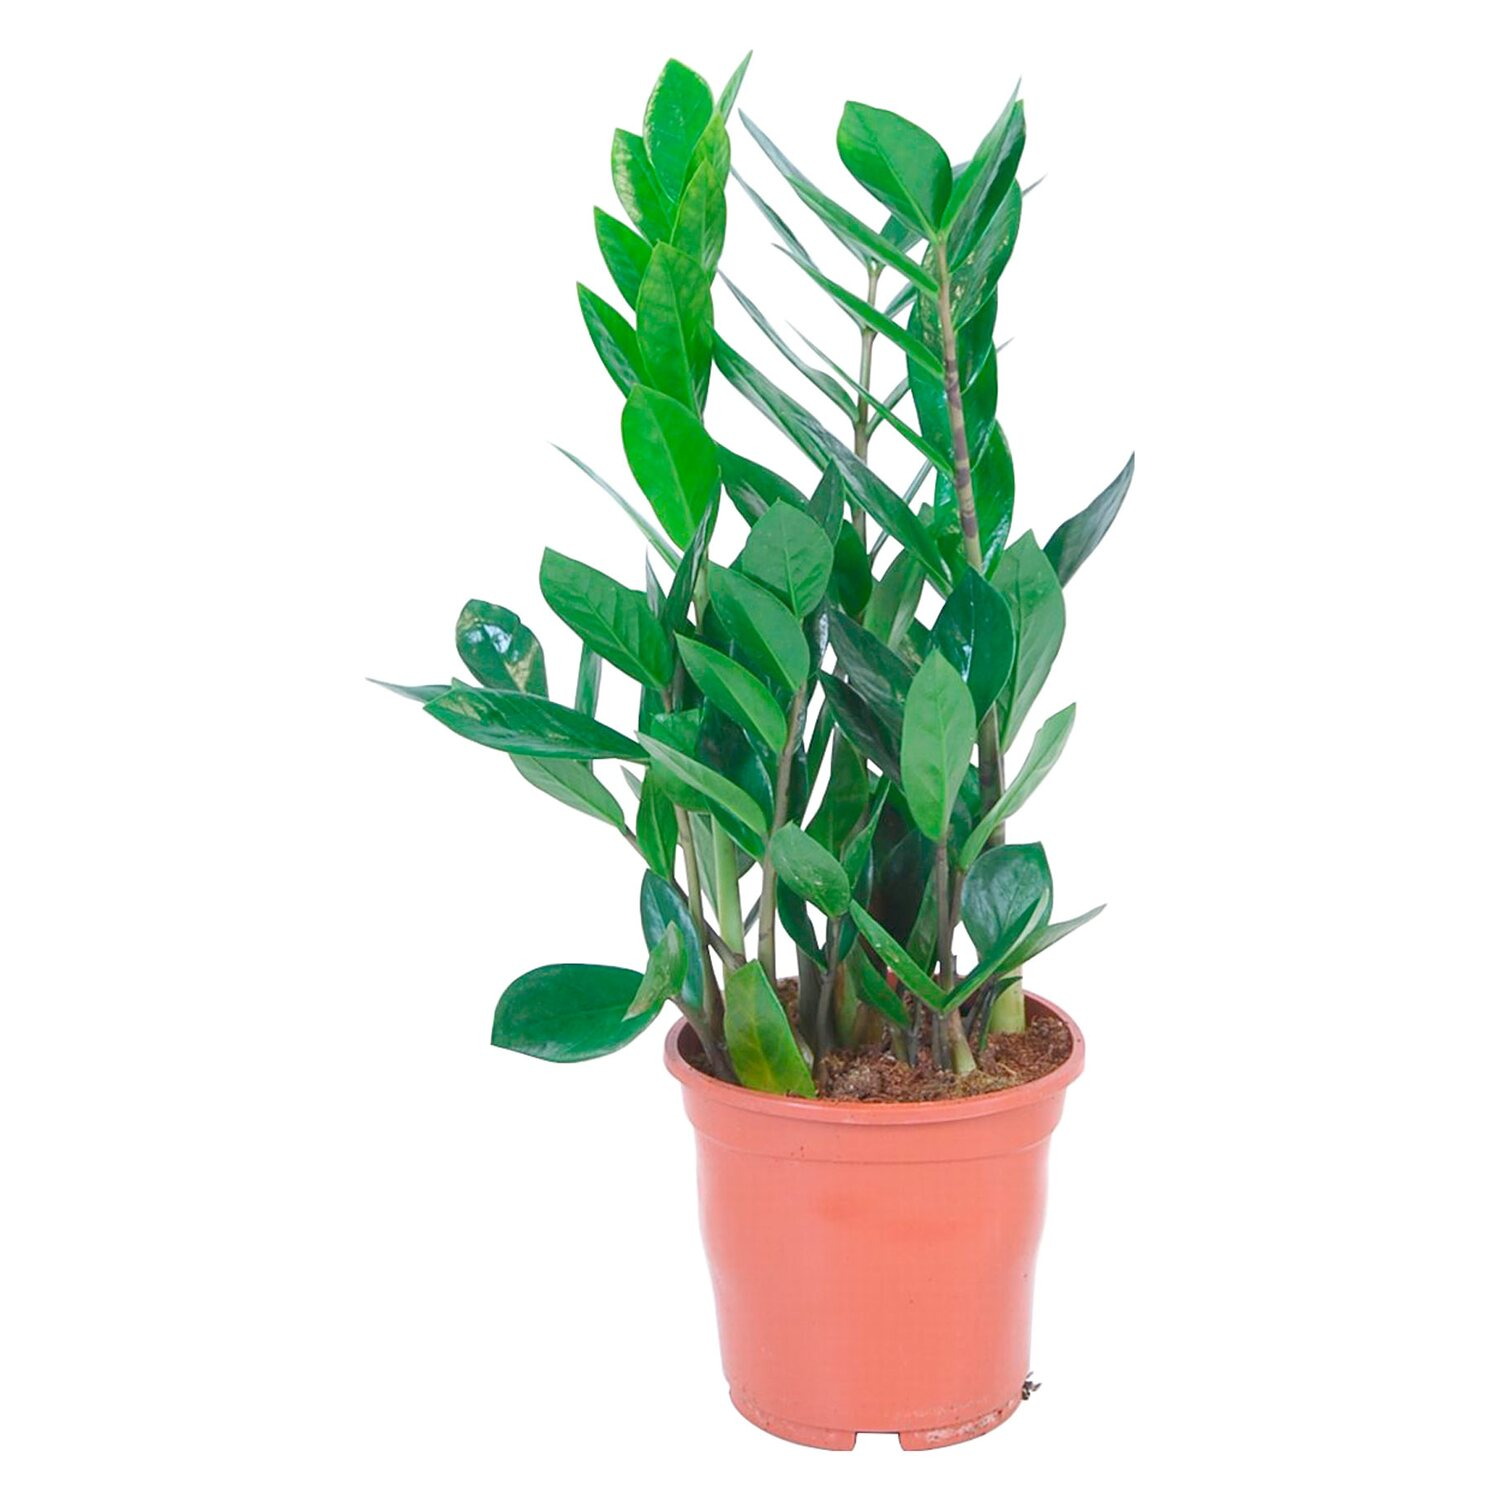 zamioculcas topf ca 14 cm zamioculcas zamiifolia kaufen bei obi. Black Bedroom Furniture Sets. Home Design Ideas